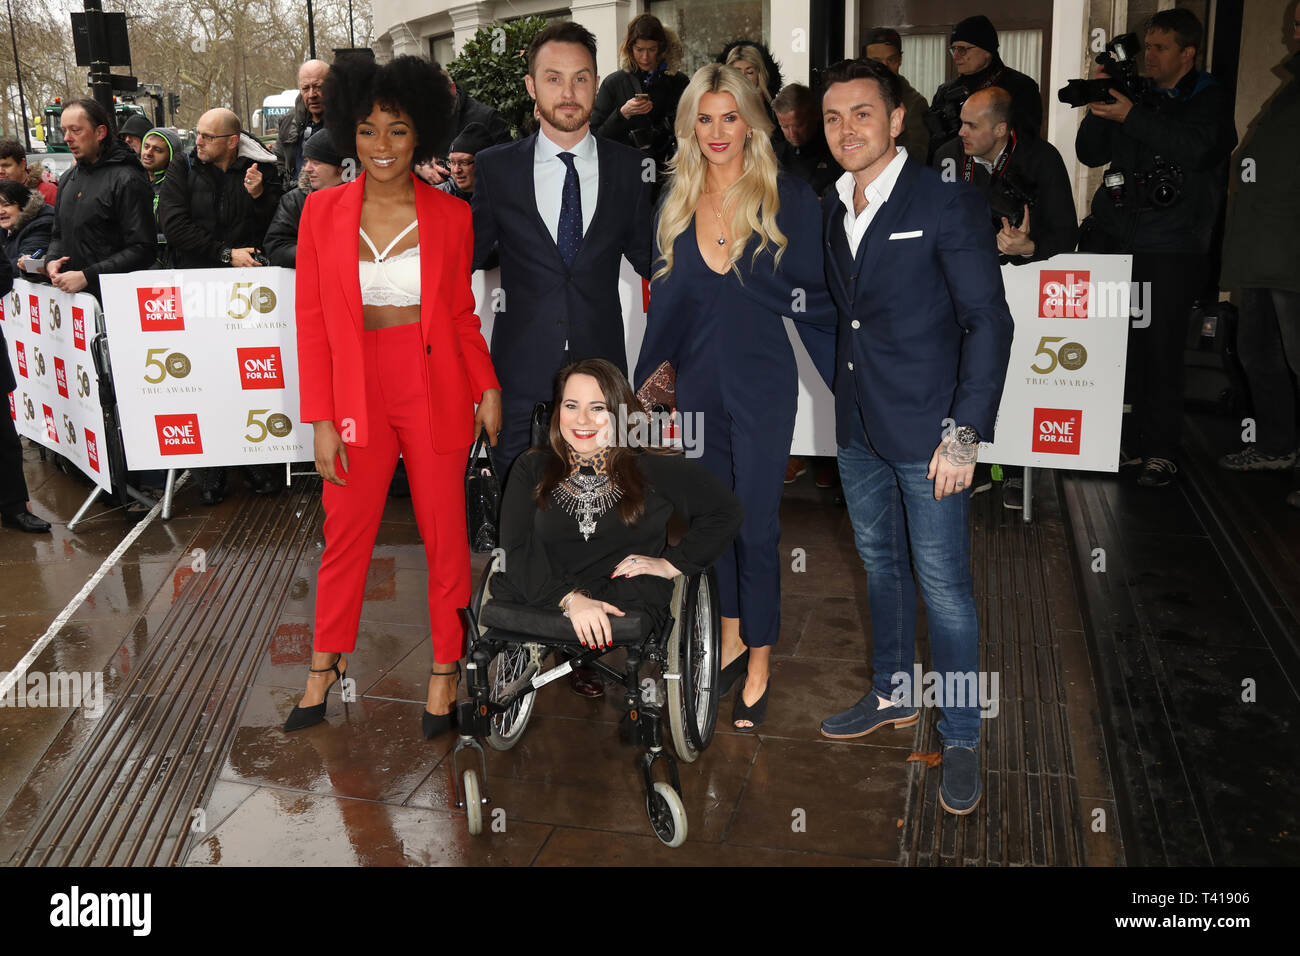 The Tric Awards 50th Anniversary held at Grosvenor Road - Arrivals  Featuring: Rachel Adedeji, Sarah Jayne Dunn Where: London, United Kingdom When: 12 Mar 2019 Credit: Lia Toby/WENN.com - Stock Image